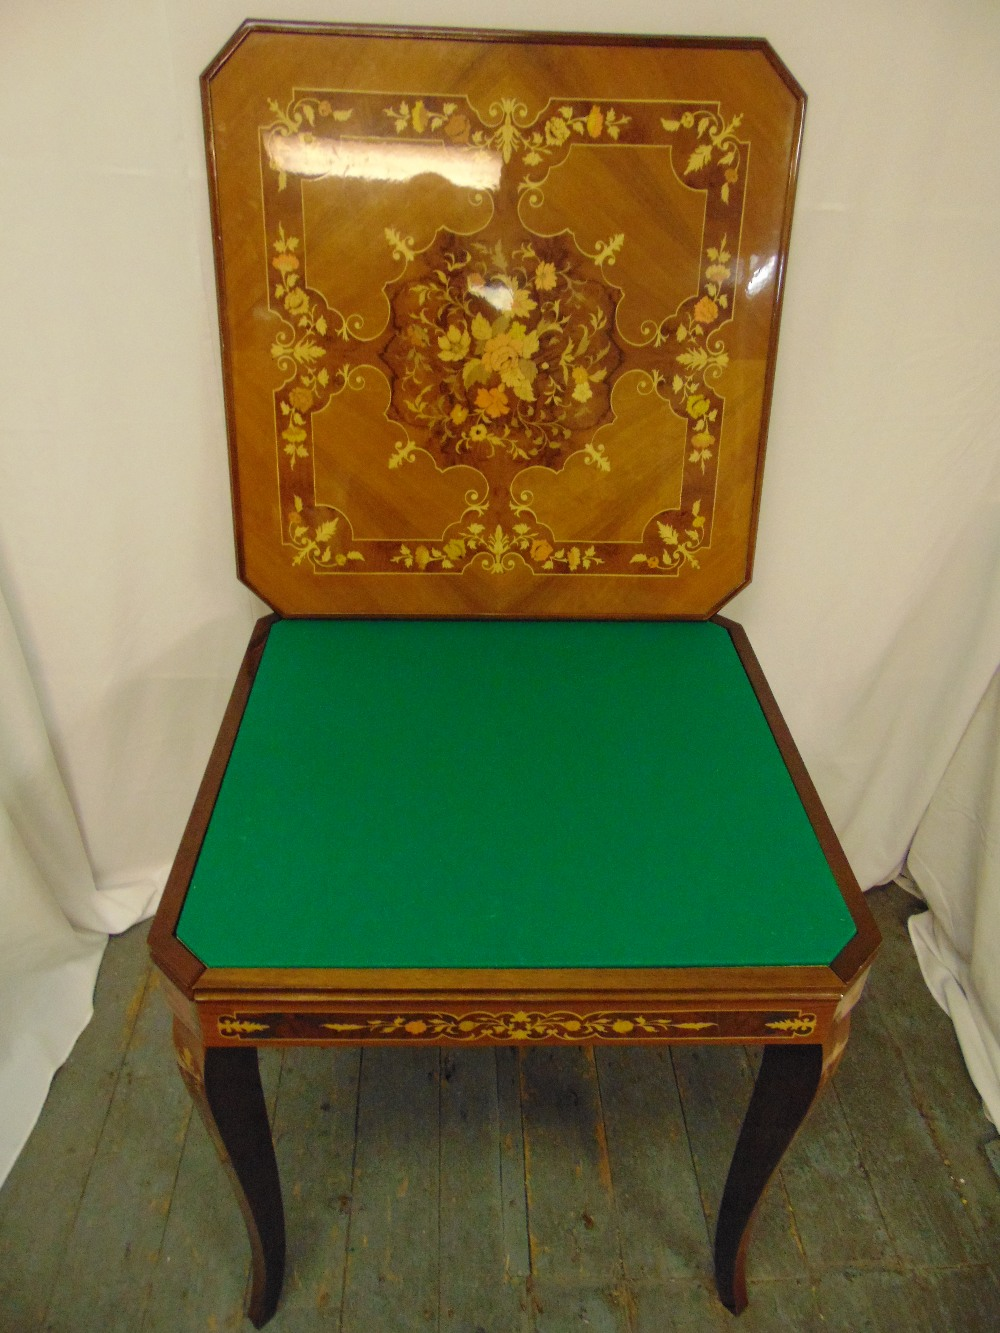 An Italian rectangular Sorrento style games table inlaid with floral clusters and stylised leaves - Image 2 of 3